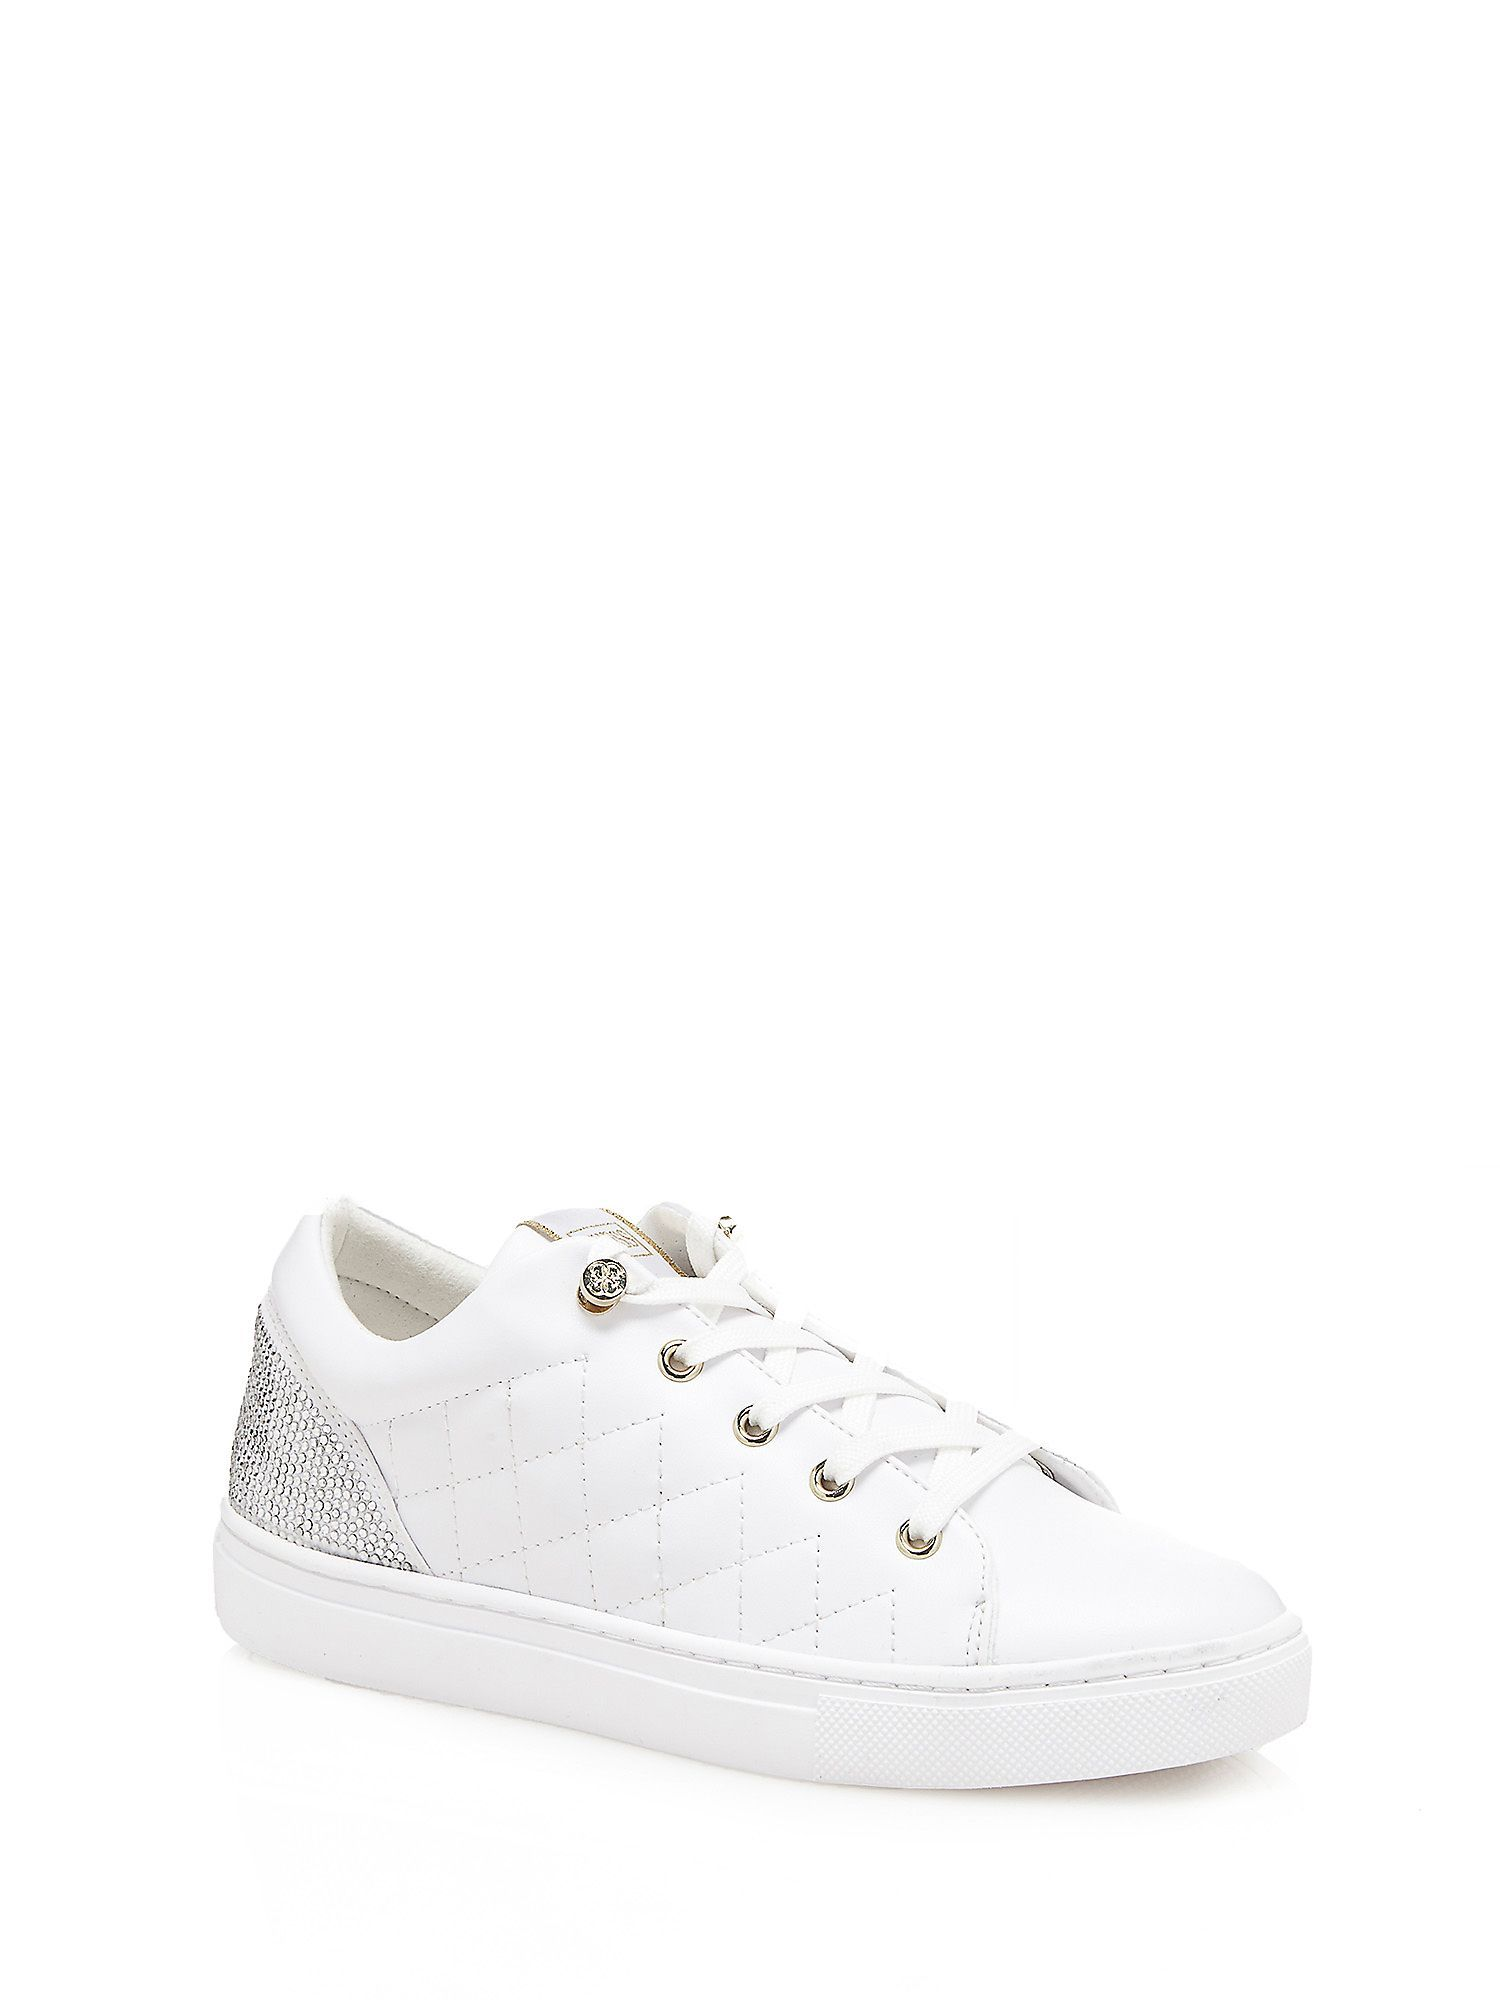 JOLLIE QUILTED SNEAKER GUESS | Sneakers